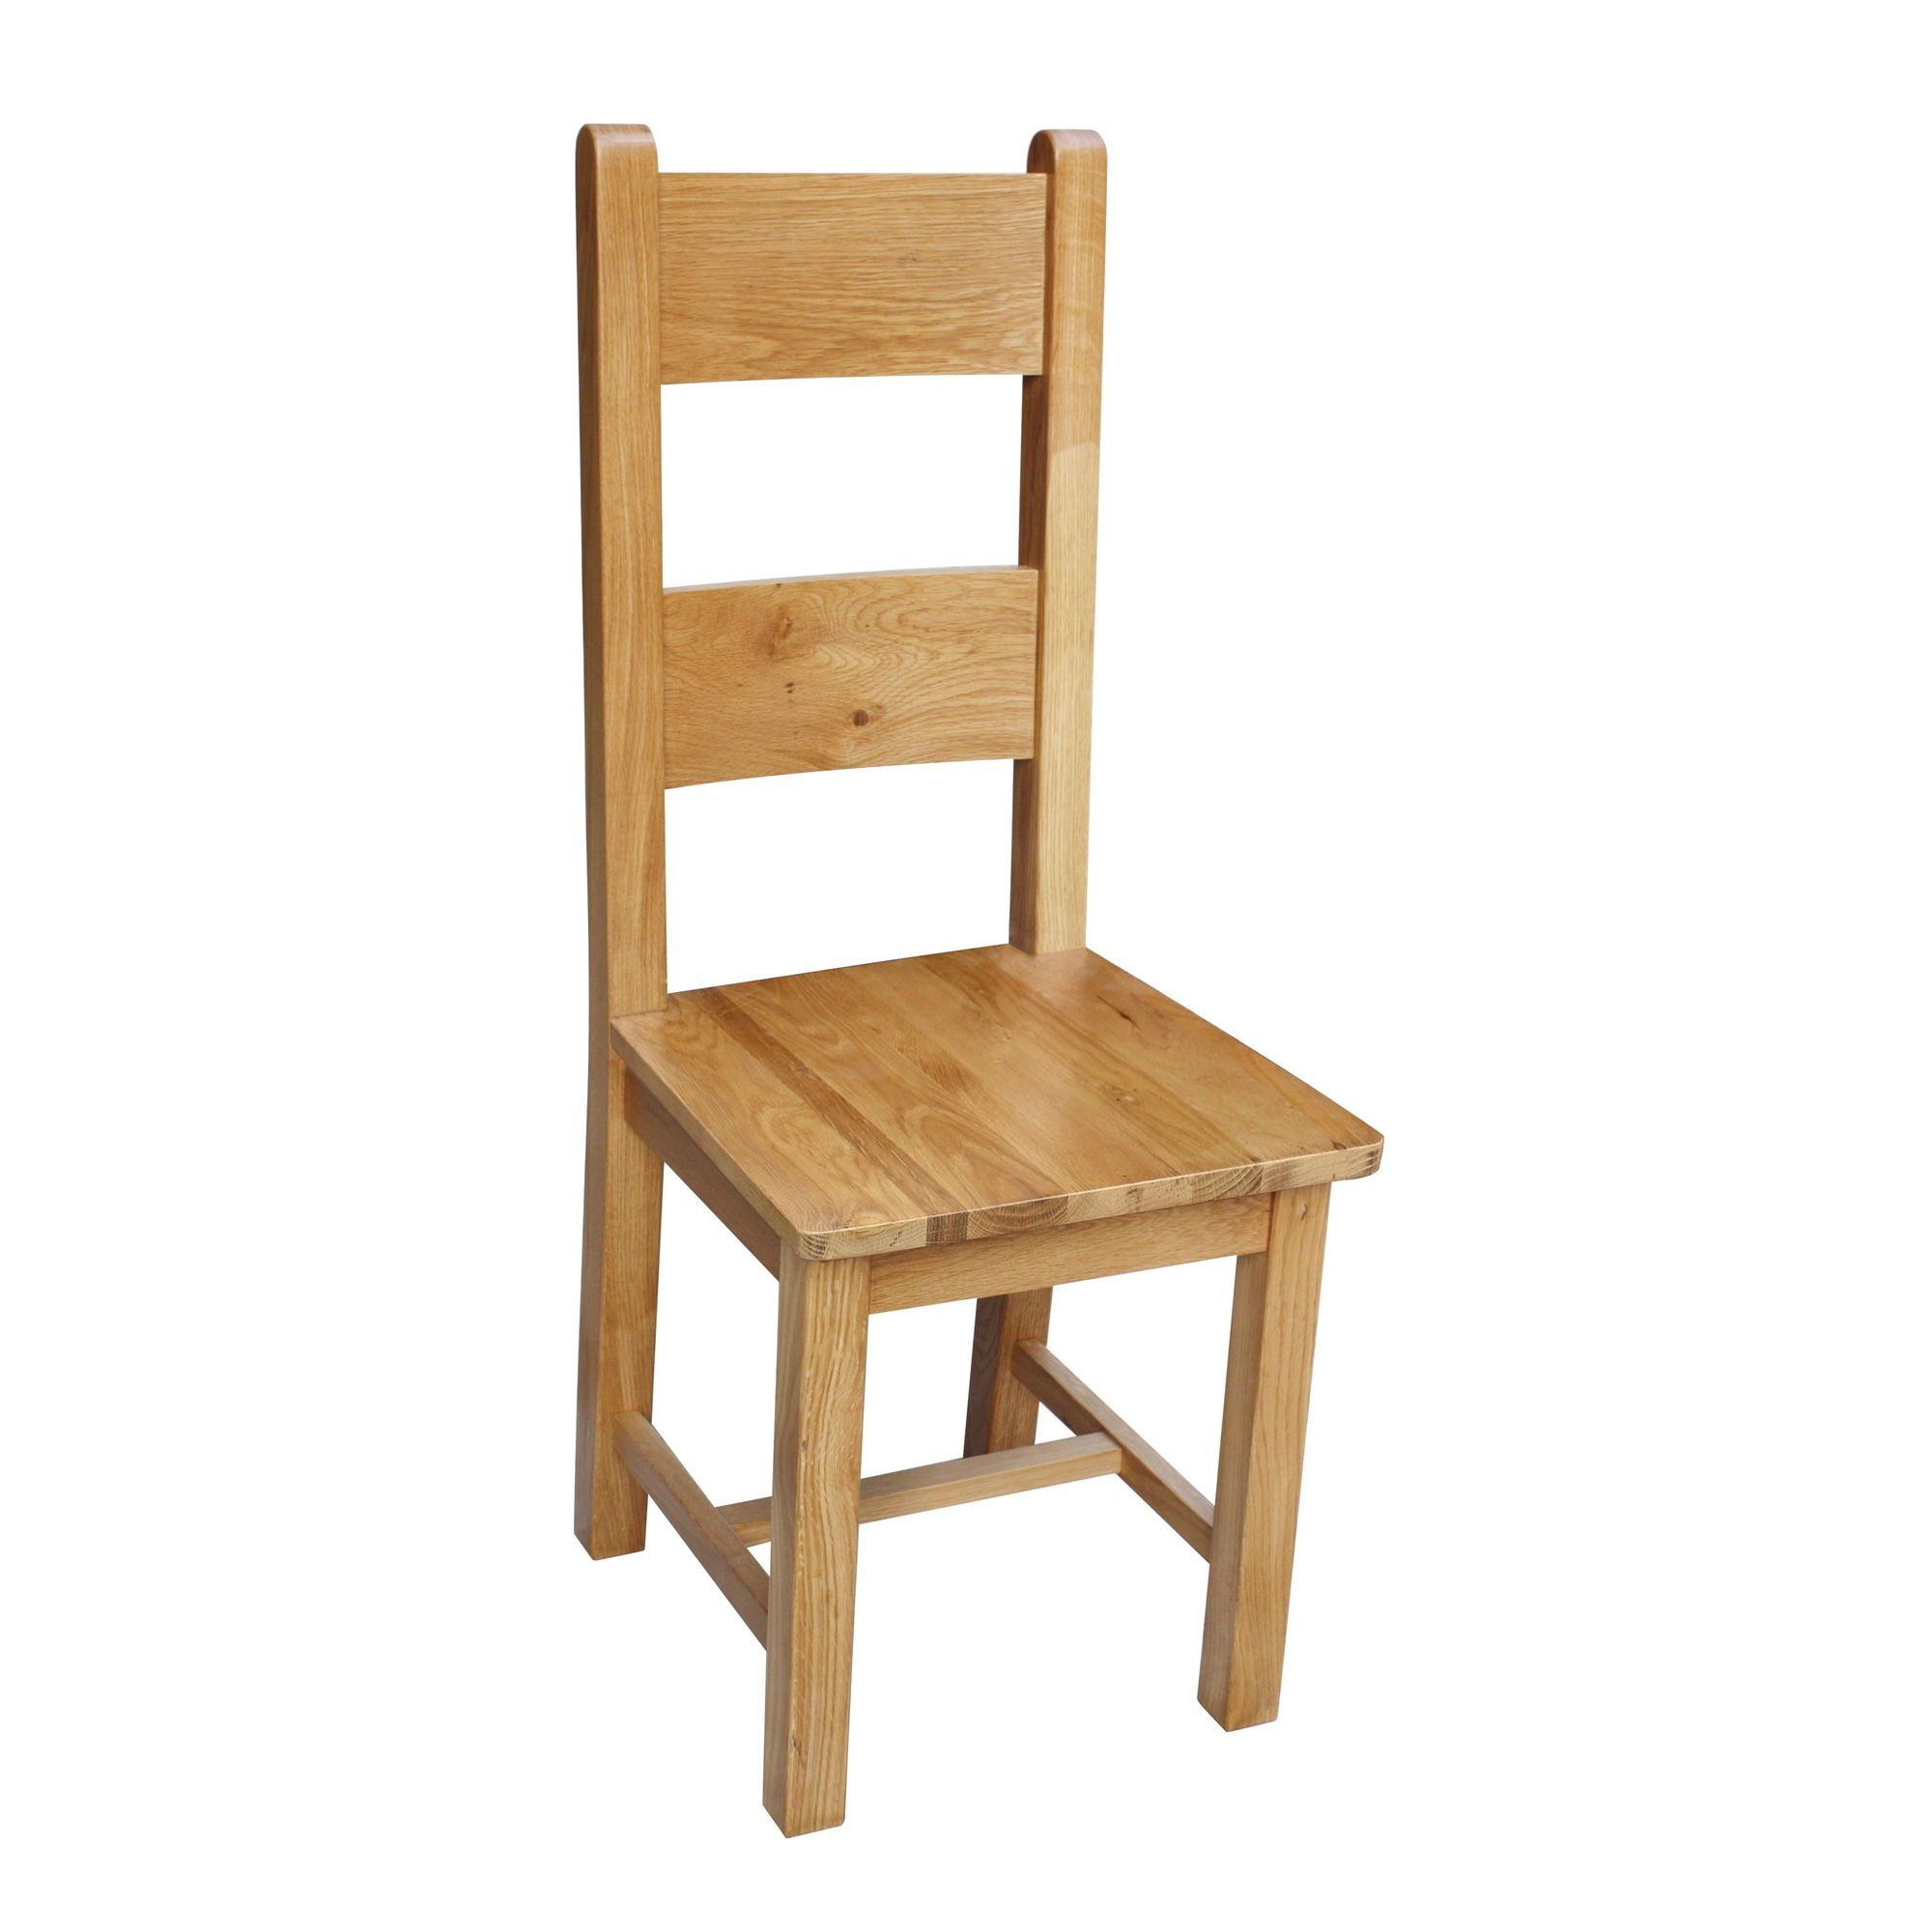 Thorndon Taunton Dining Chair with Wooden Seat Pad in Rustic (Set of 2)